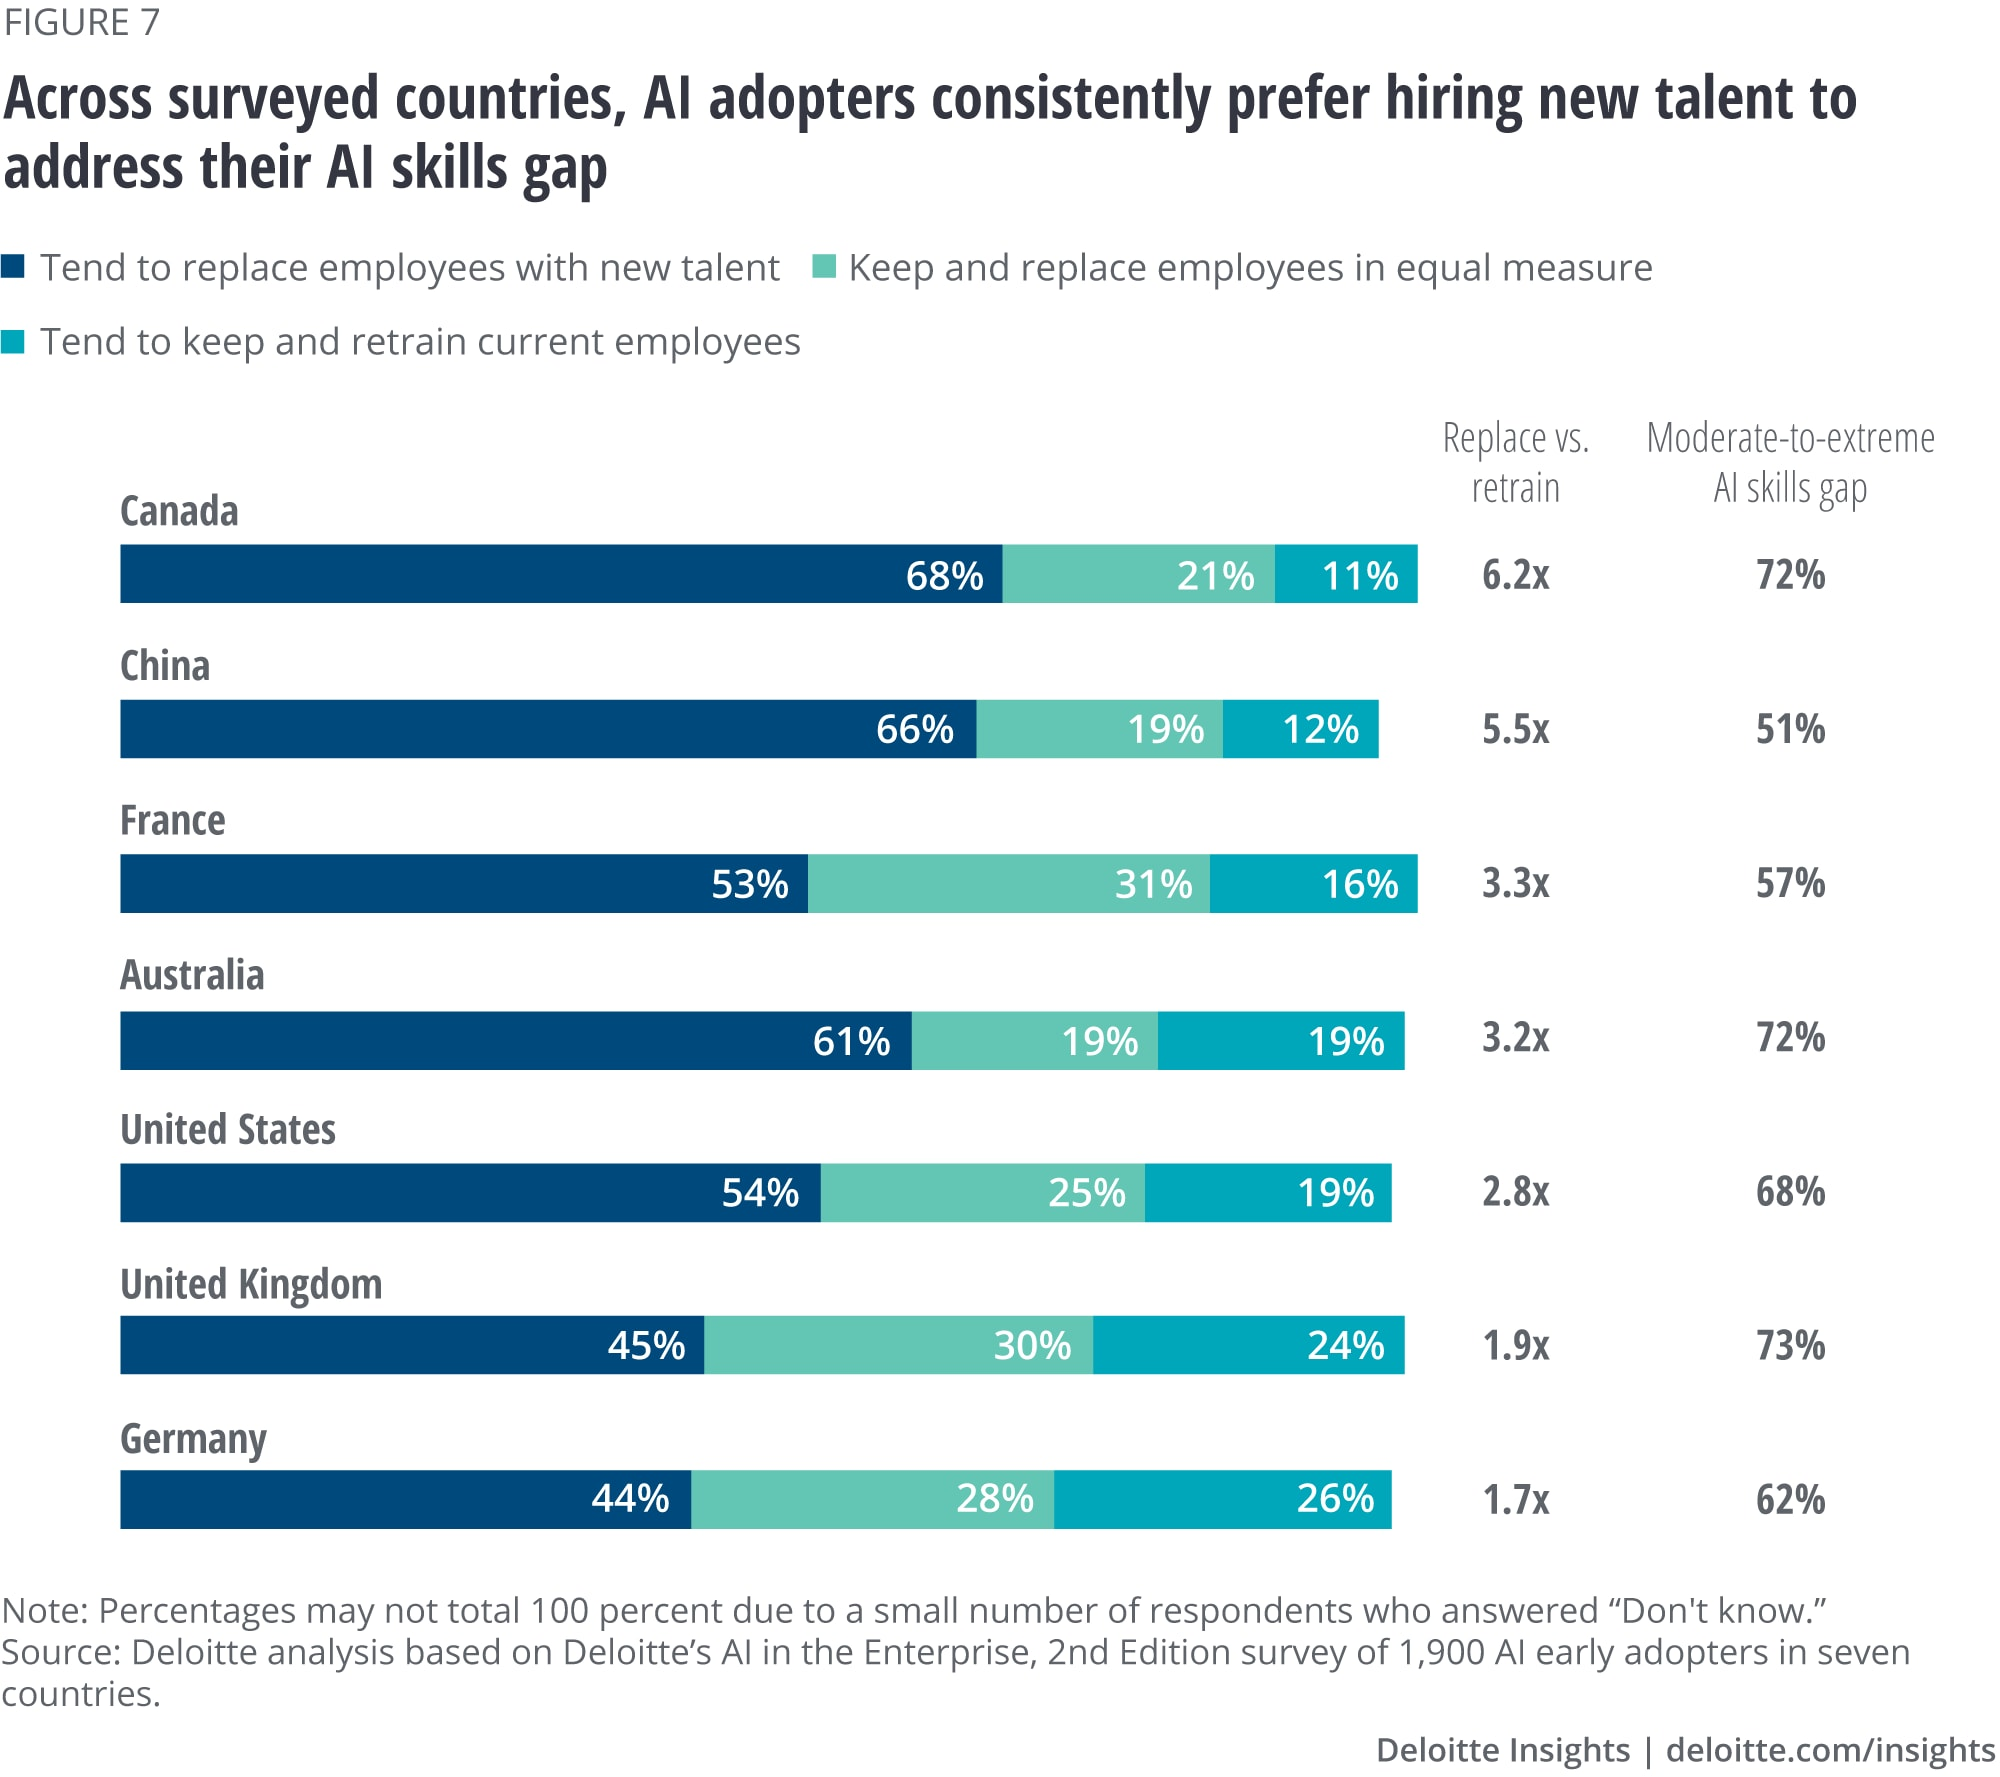 Across surveyed countries, AI adopters consistently preferred hiring new talent to address their AI skills gap